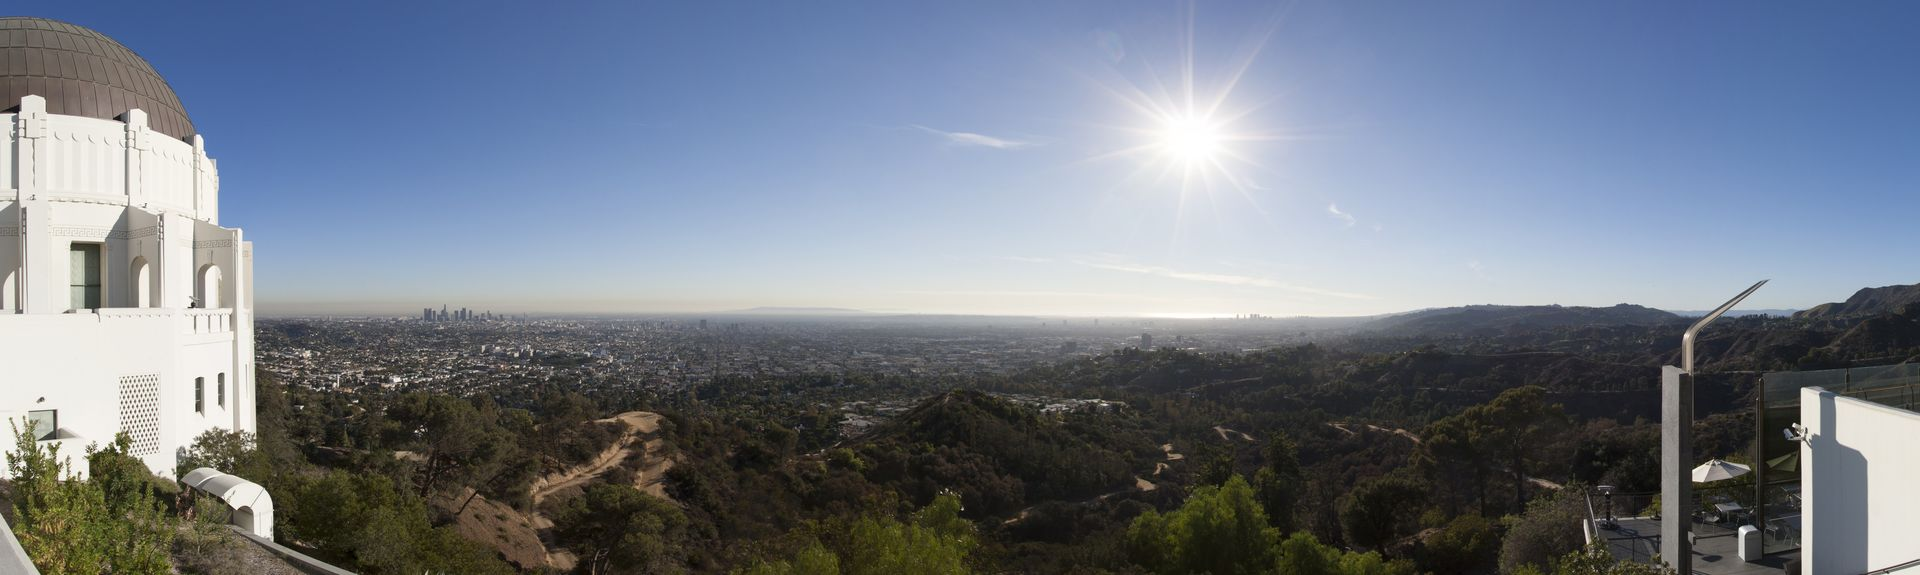 Los Feliz, Los Angeles, CA, USA